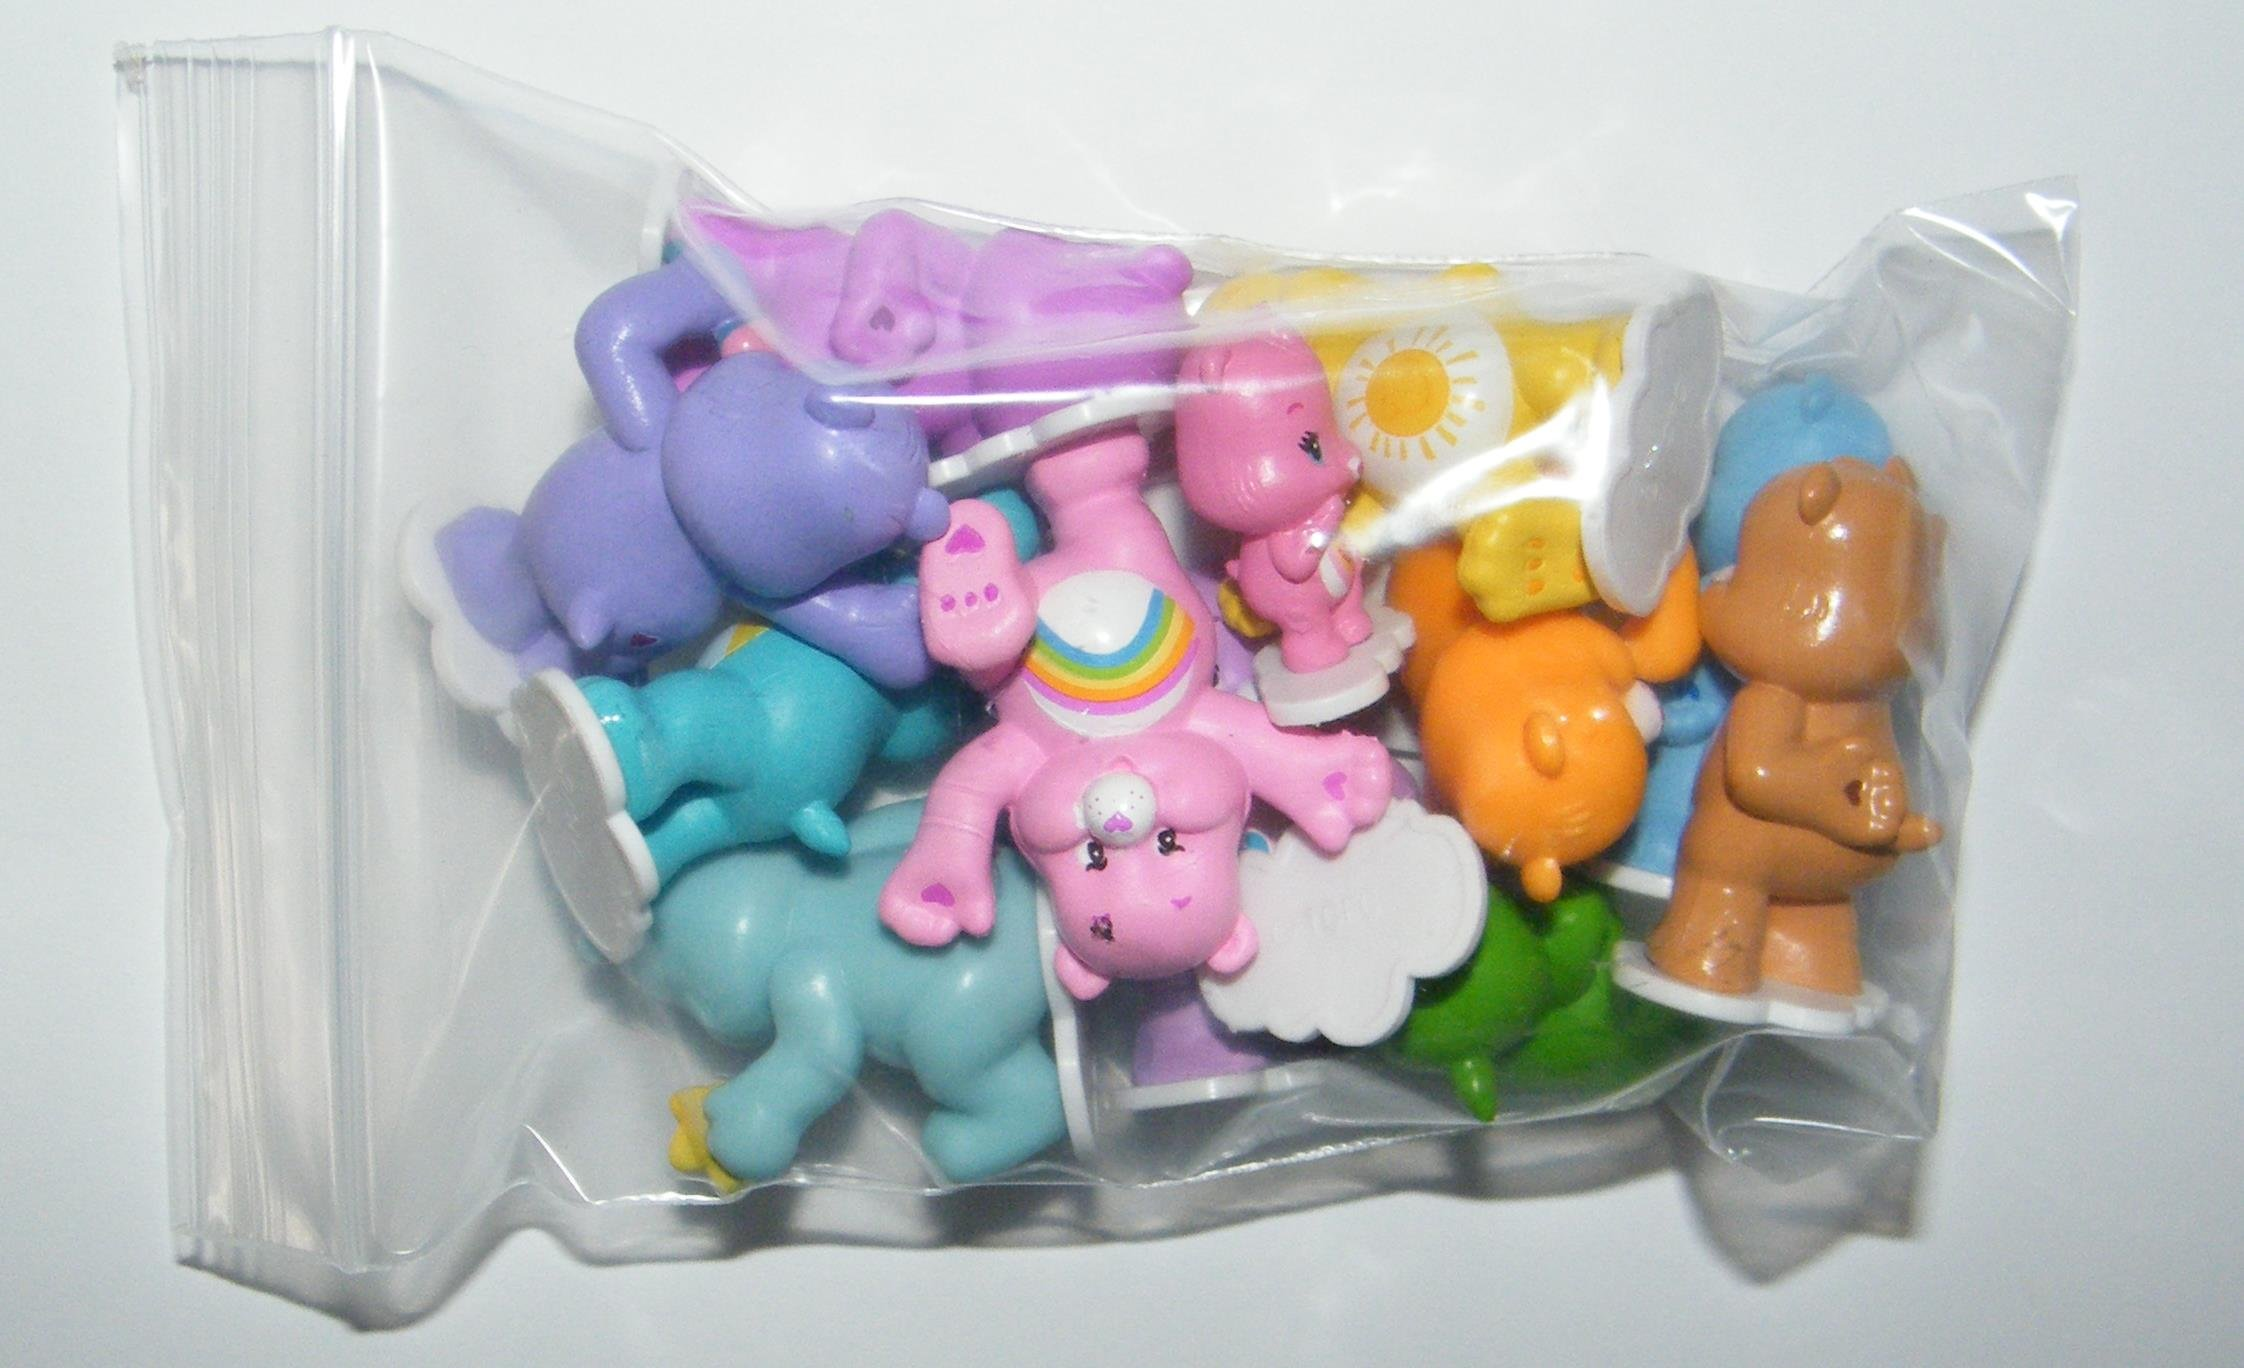 Care Bears Cupcake Topper Birthday Party Decorations Set of 12 Figures with Share Bear, Wonderheart Bear, Grumpy Bear, Wish Bear and Many More! by Care Bears (Image #7)